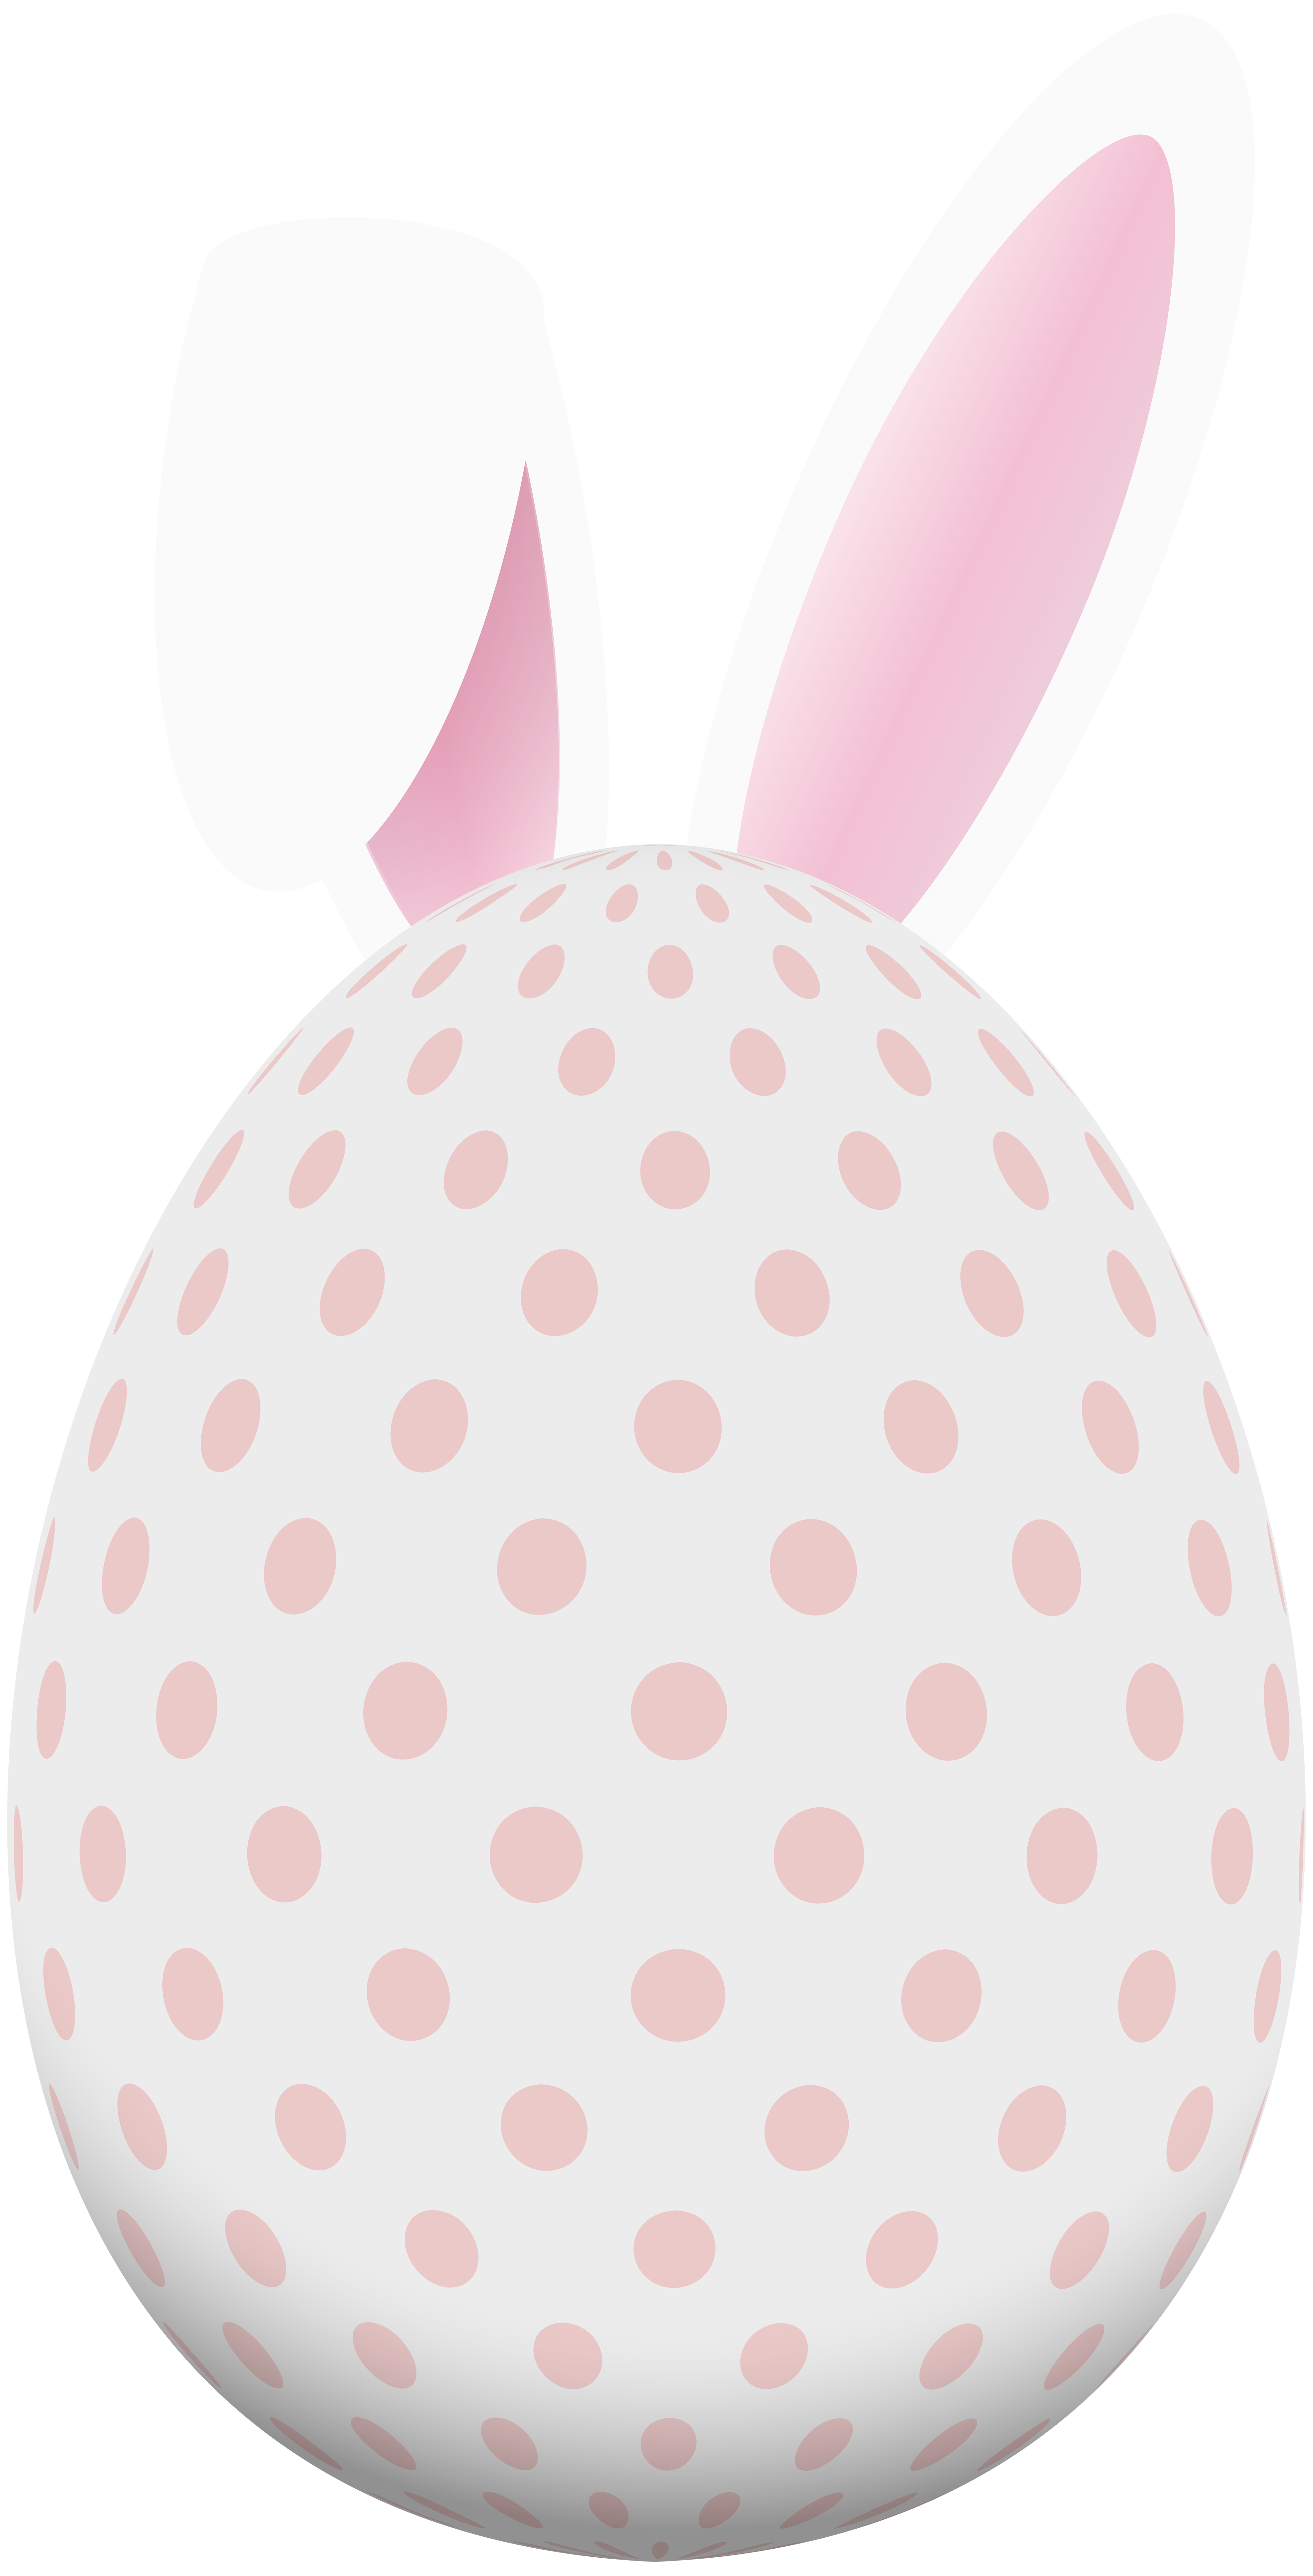 Bunny ears png. Easter egg with clip